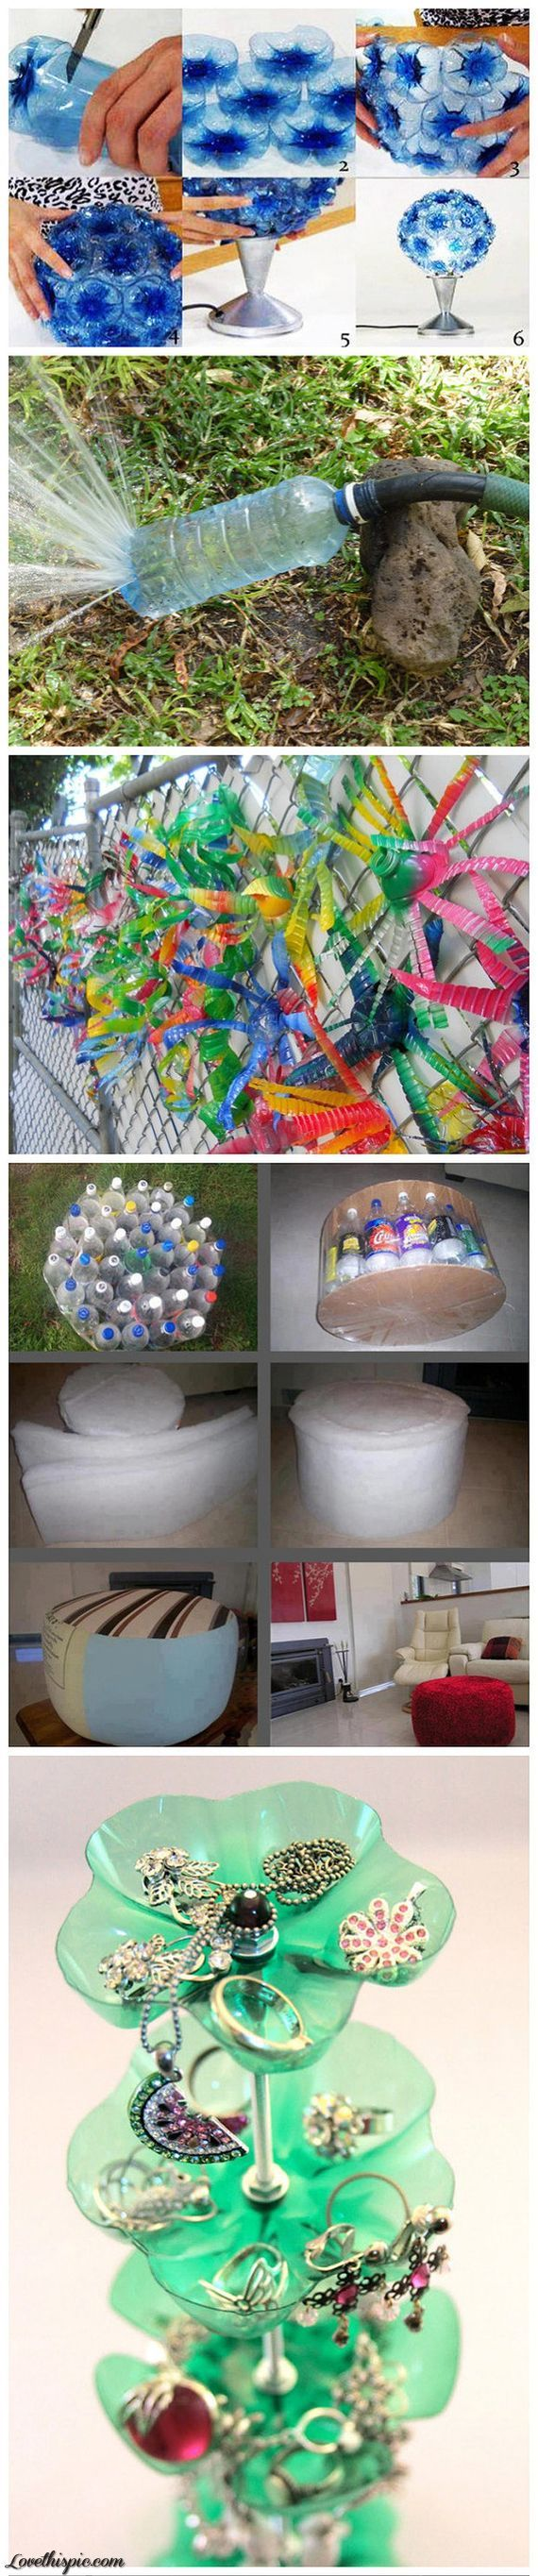 Creative product ideas diy crafts home made easy crafts craft idea creative product ideas diy crafts home made easy crafts craft idea crafts ideas diy ideas diy solutioingenieria Images